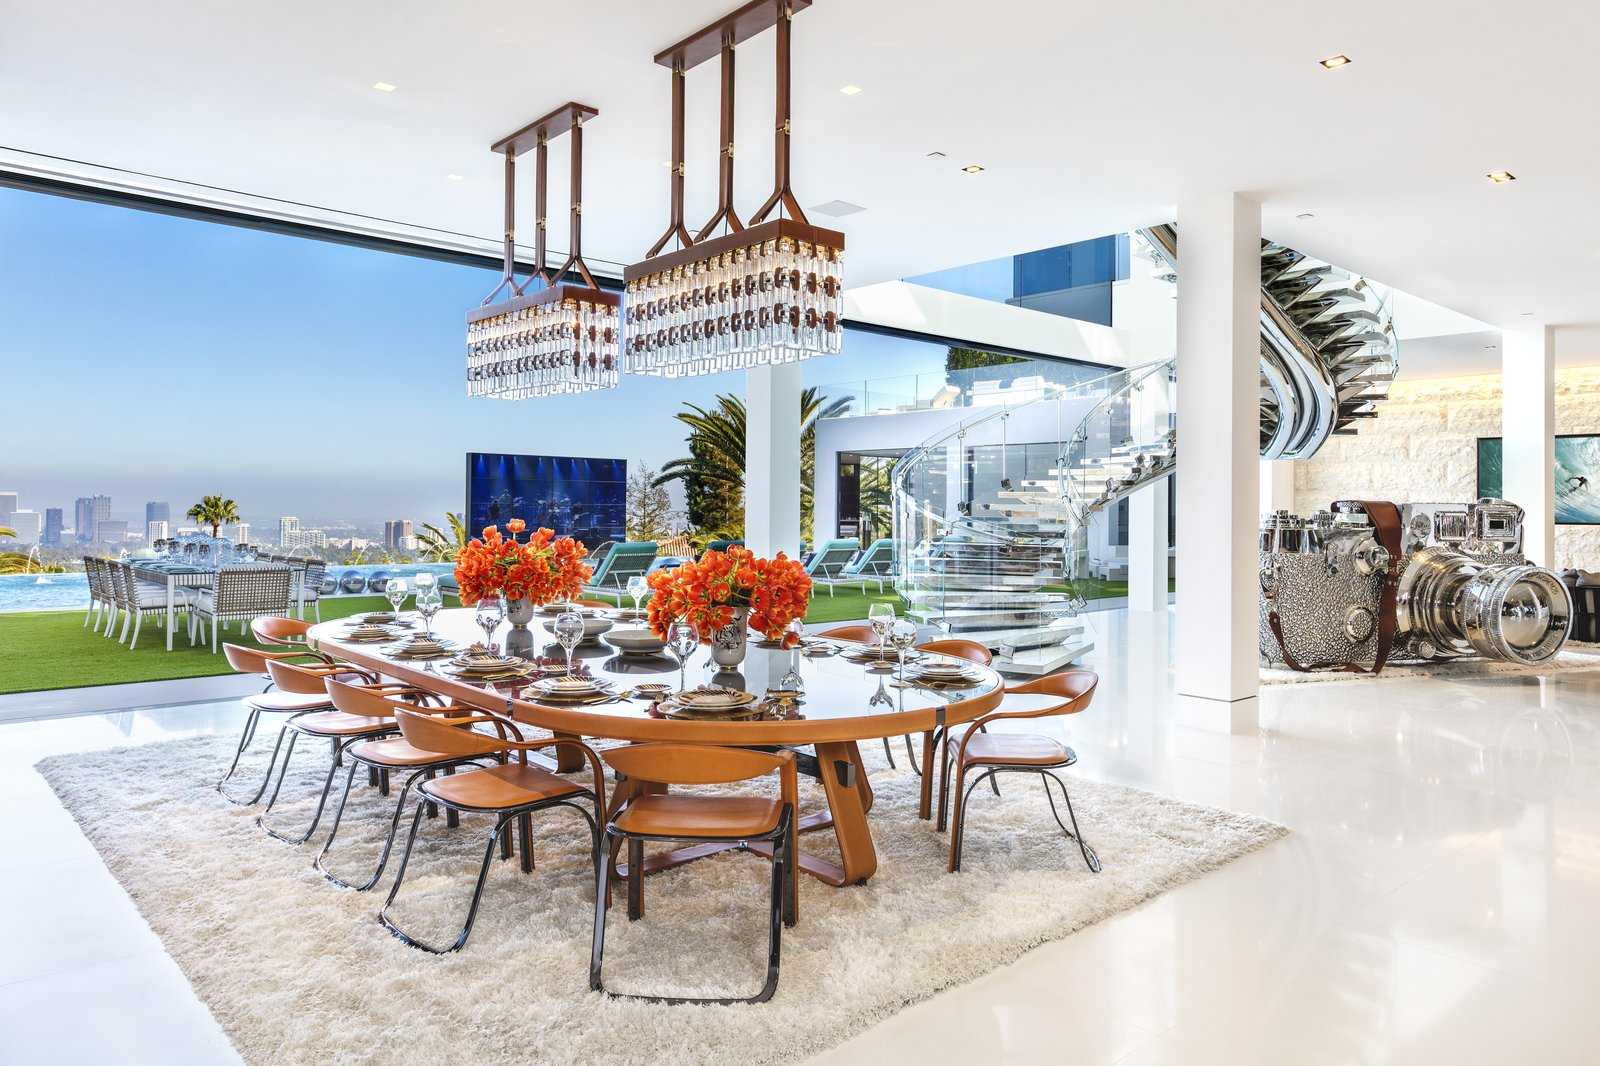 Photo 2 of 8 in Most Expensive Home in the U.S. Lists for $250 Million